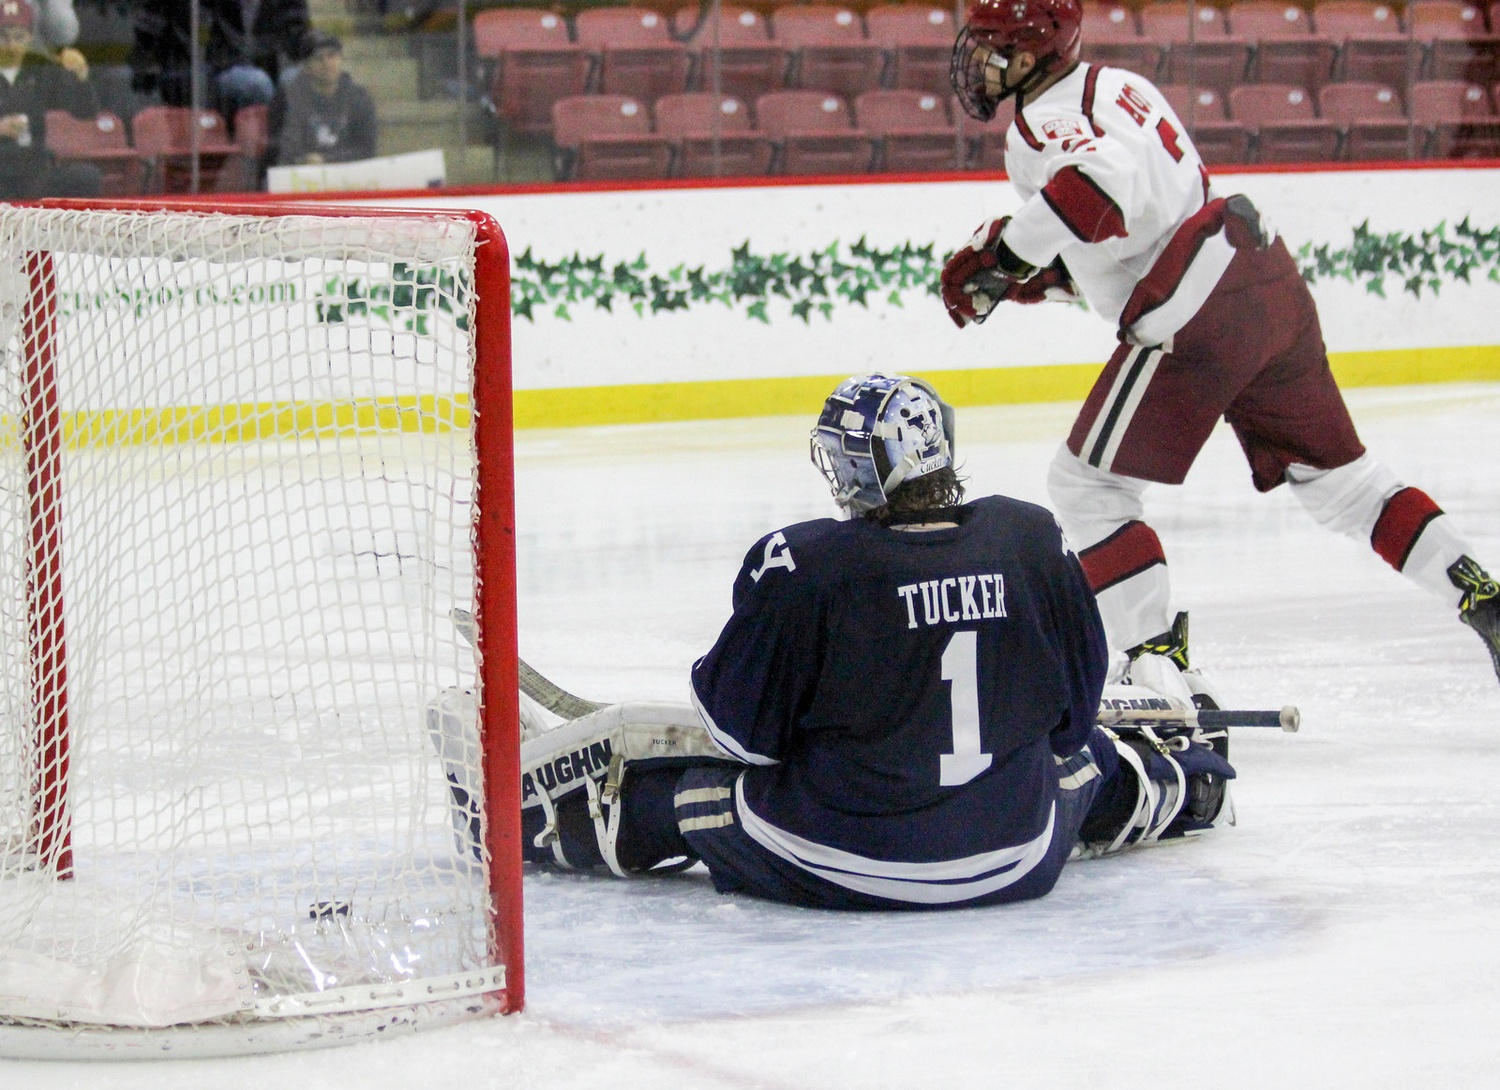 Last season, Harvard took all four games from Yale. The Bulldogs simply could not keep up with the Crimson's scoring pace. This provides for an even more heated rivalry heading into next year, as Yale looks to avenge those losses.